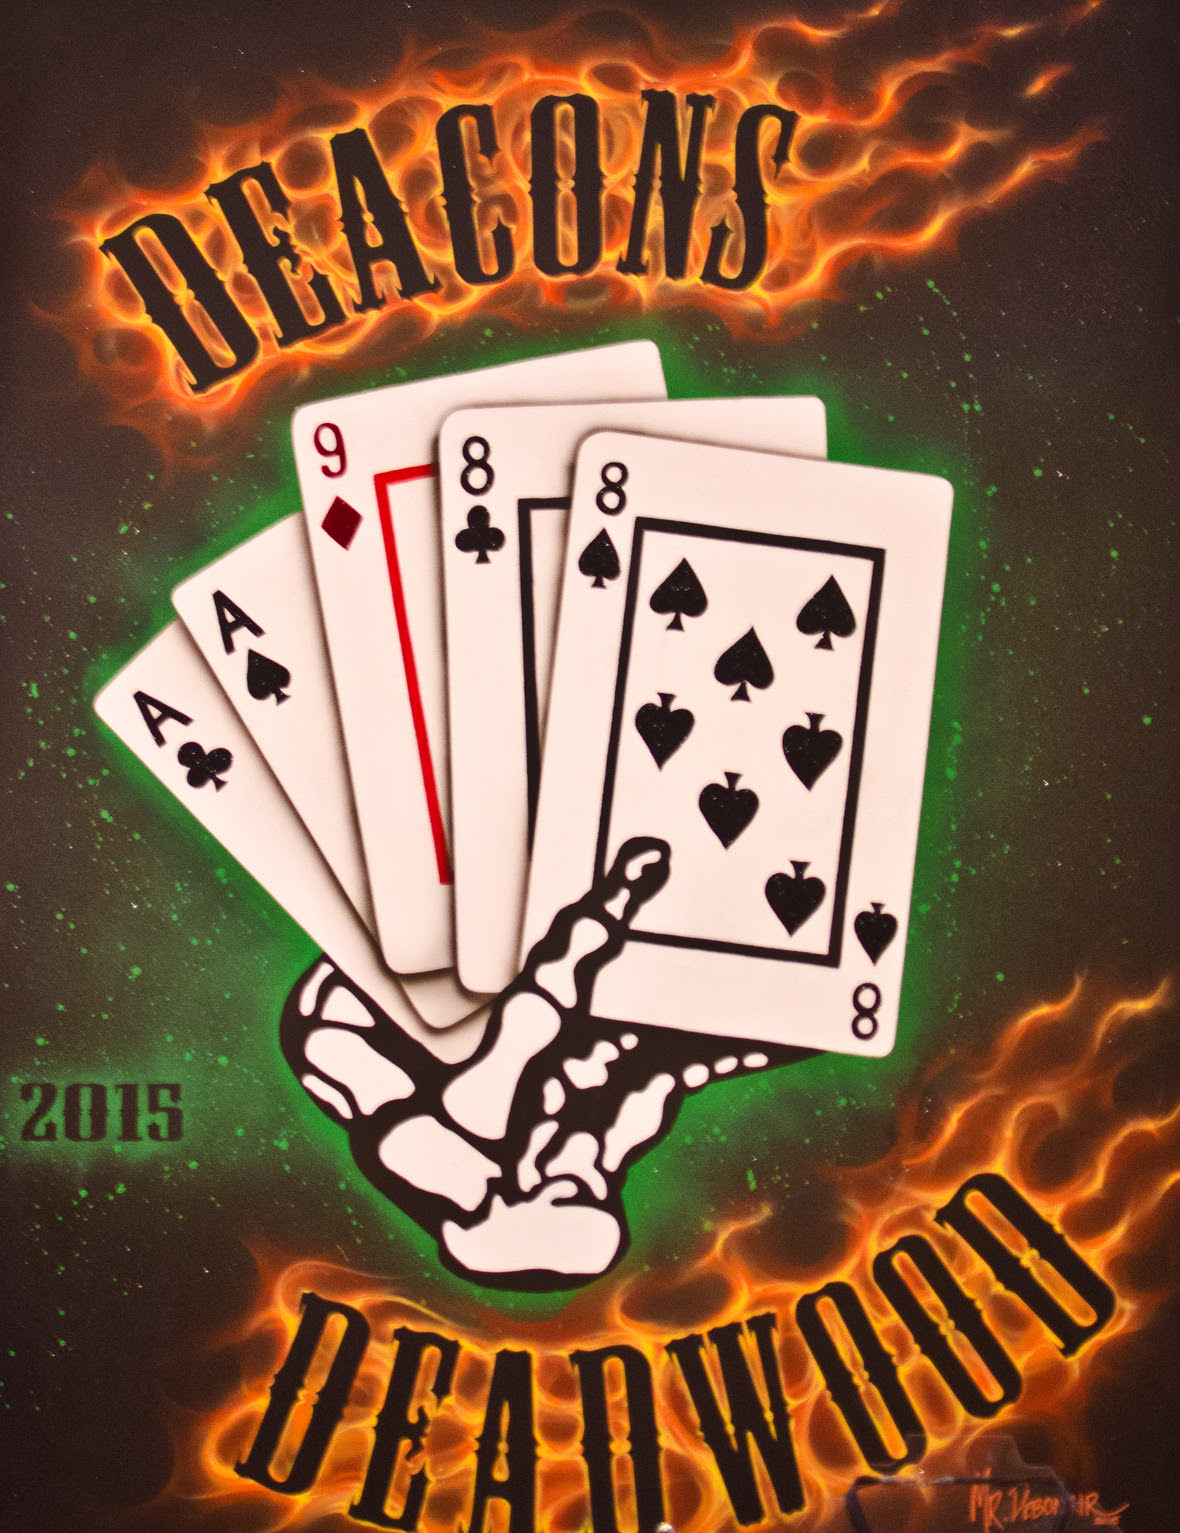 Deacons 2015 Poster